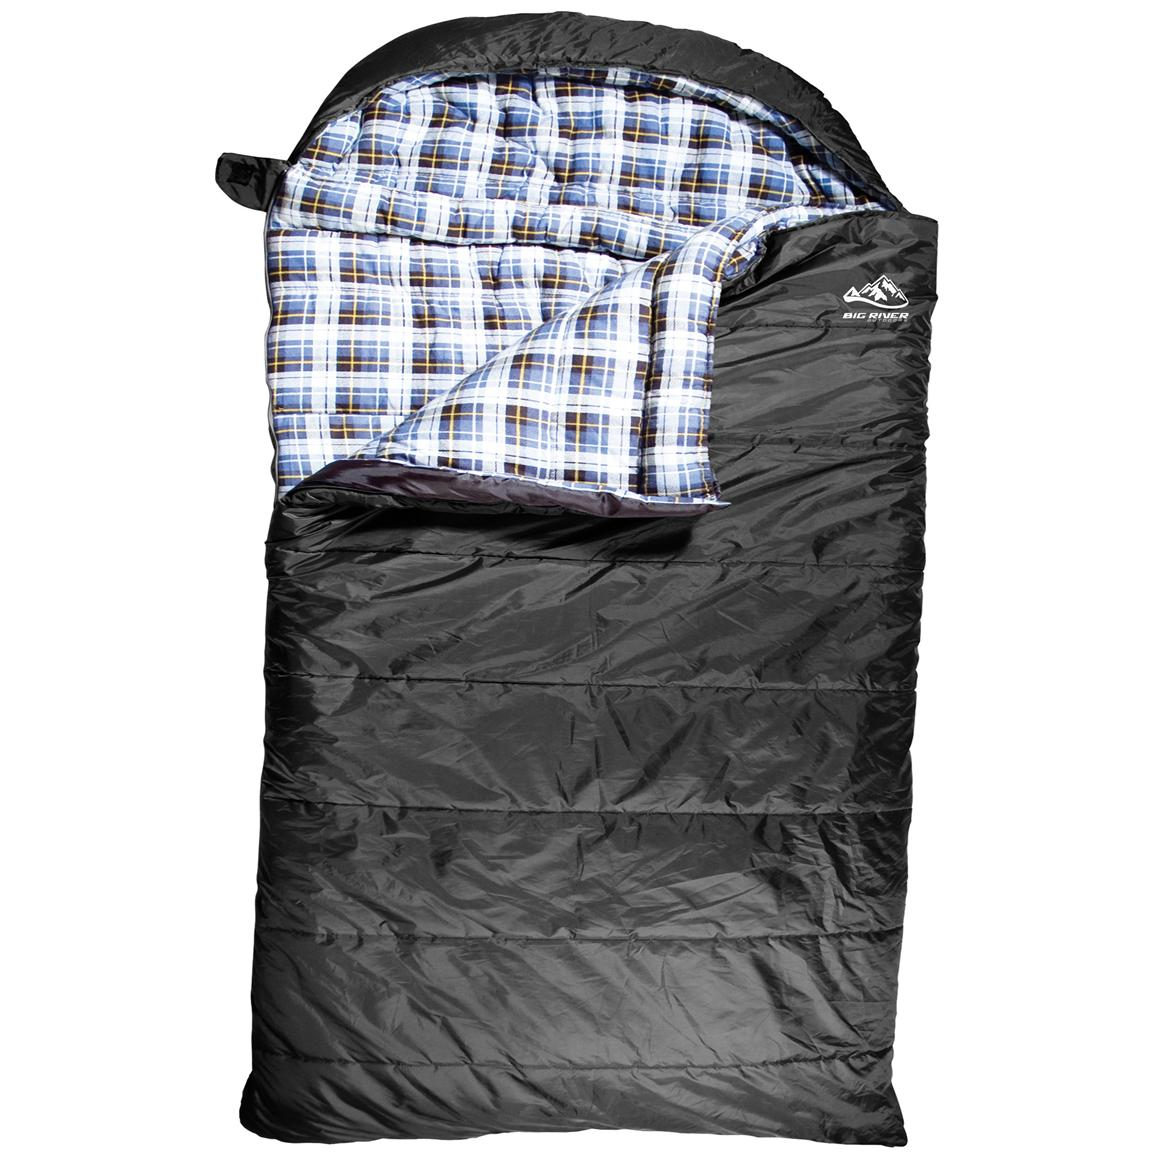 Big River Outdoors™ 0 Degree F 2-person Sleeping Bag